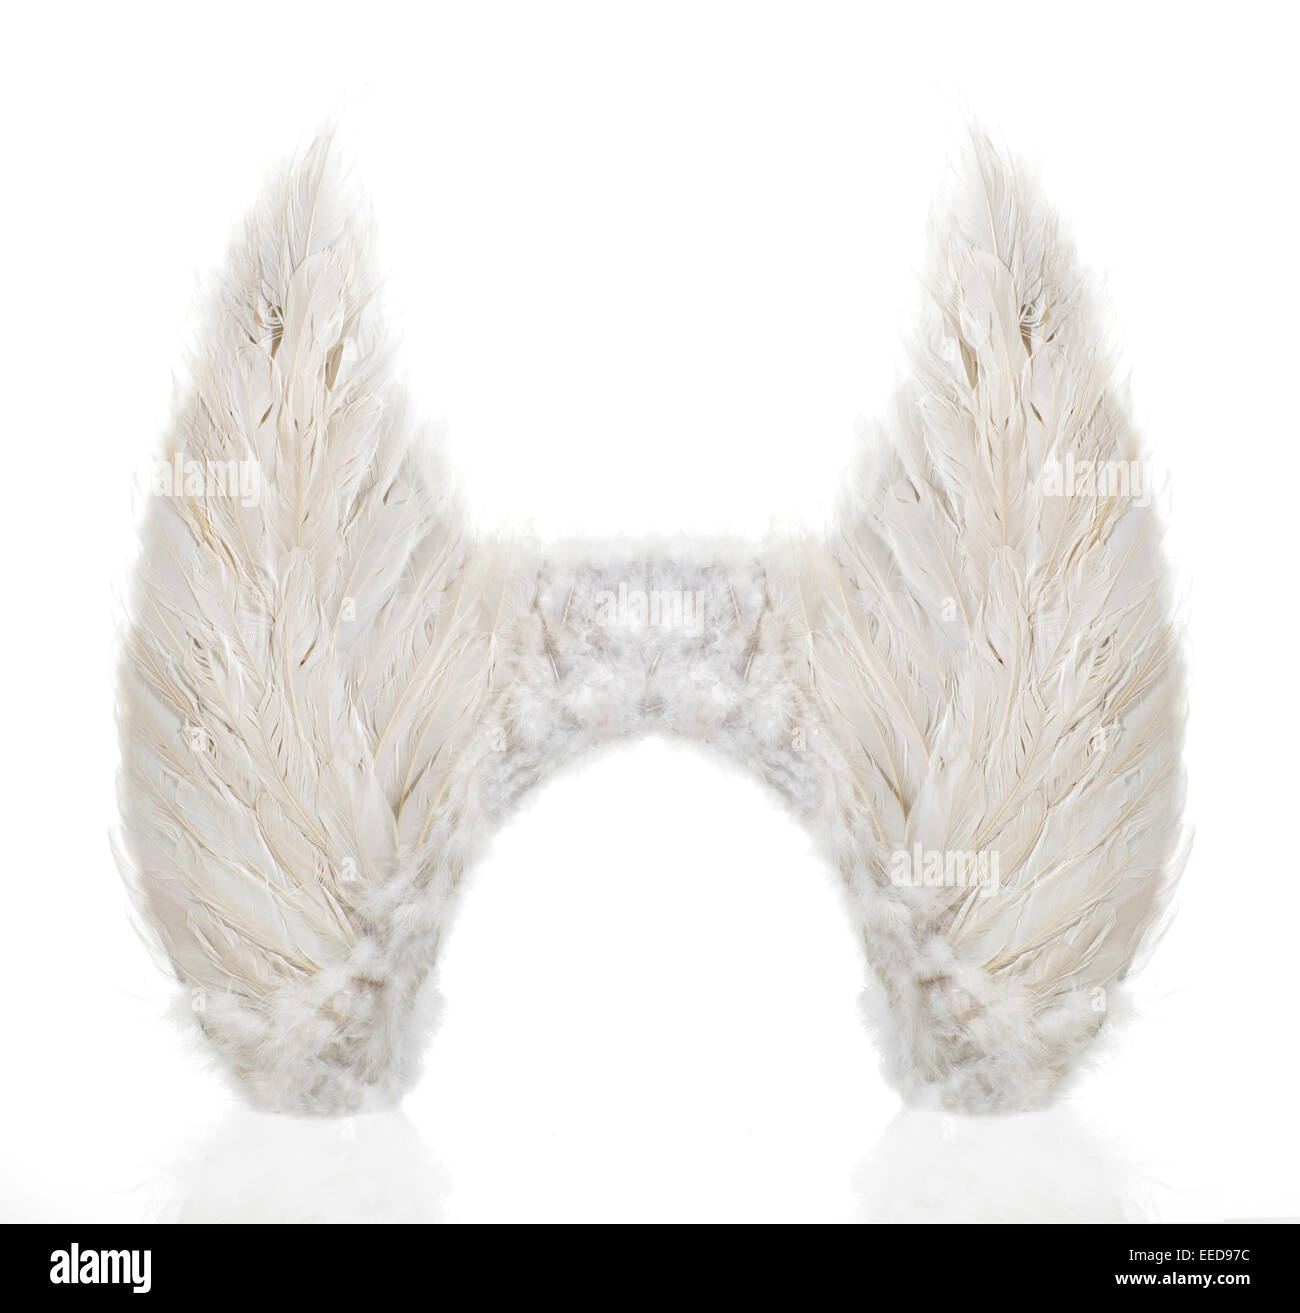 Pair of wings made from white feathers - Stock Image